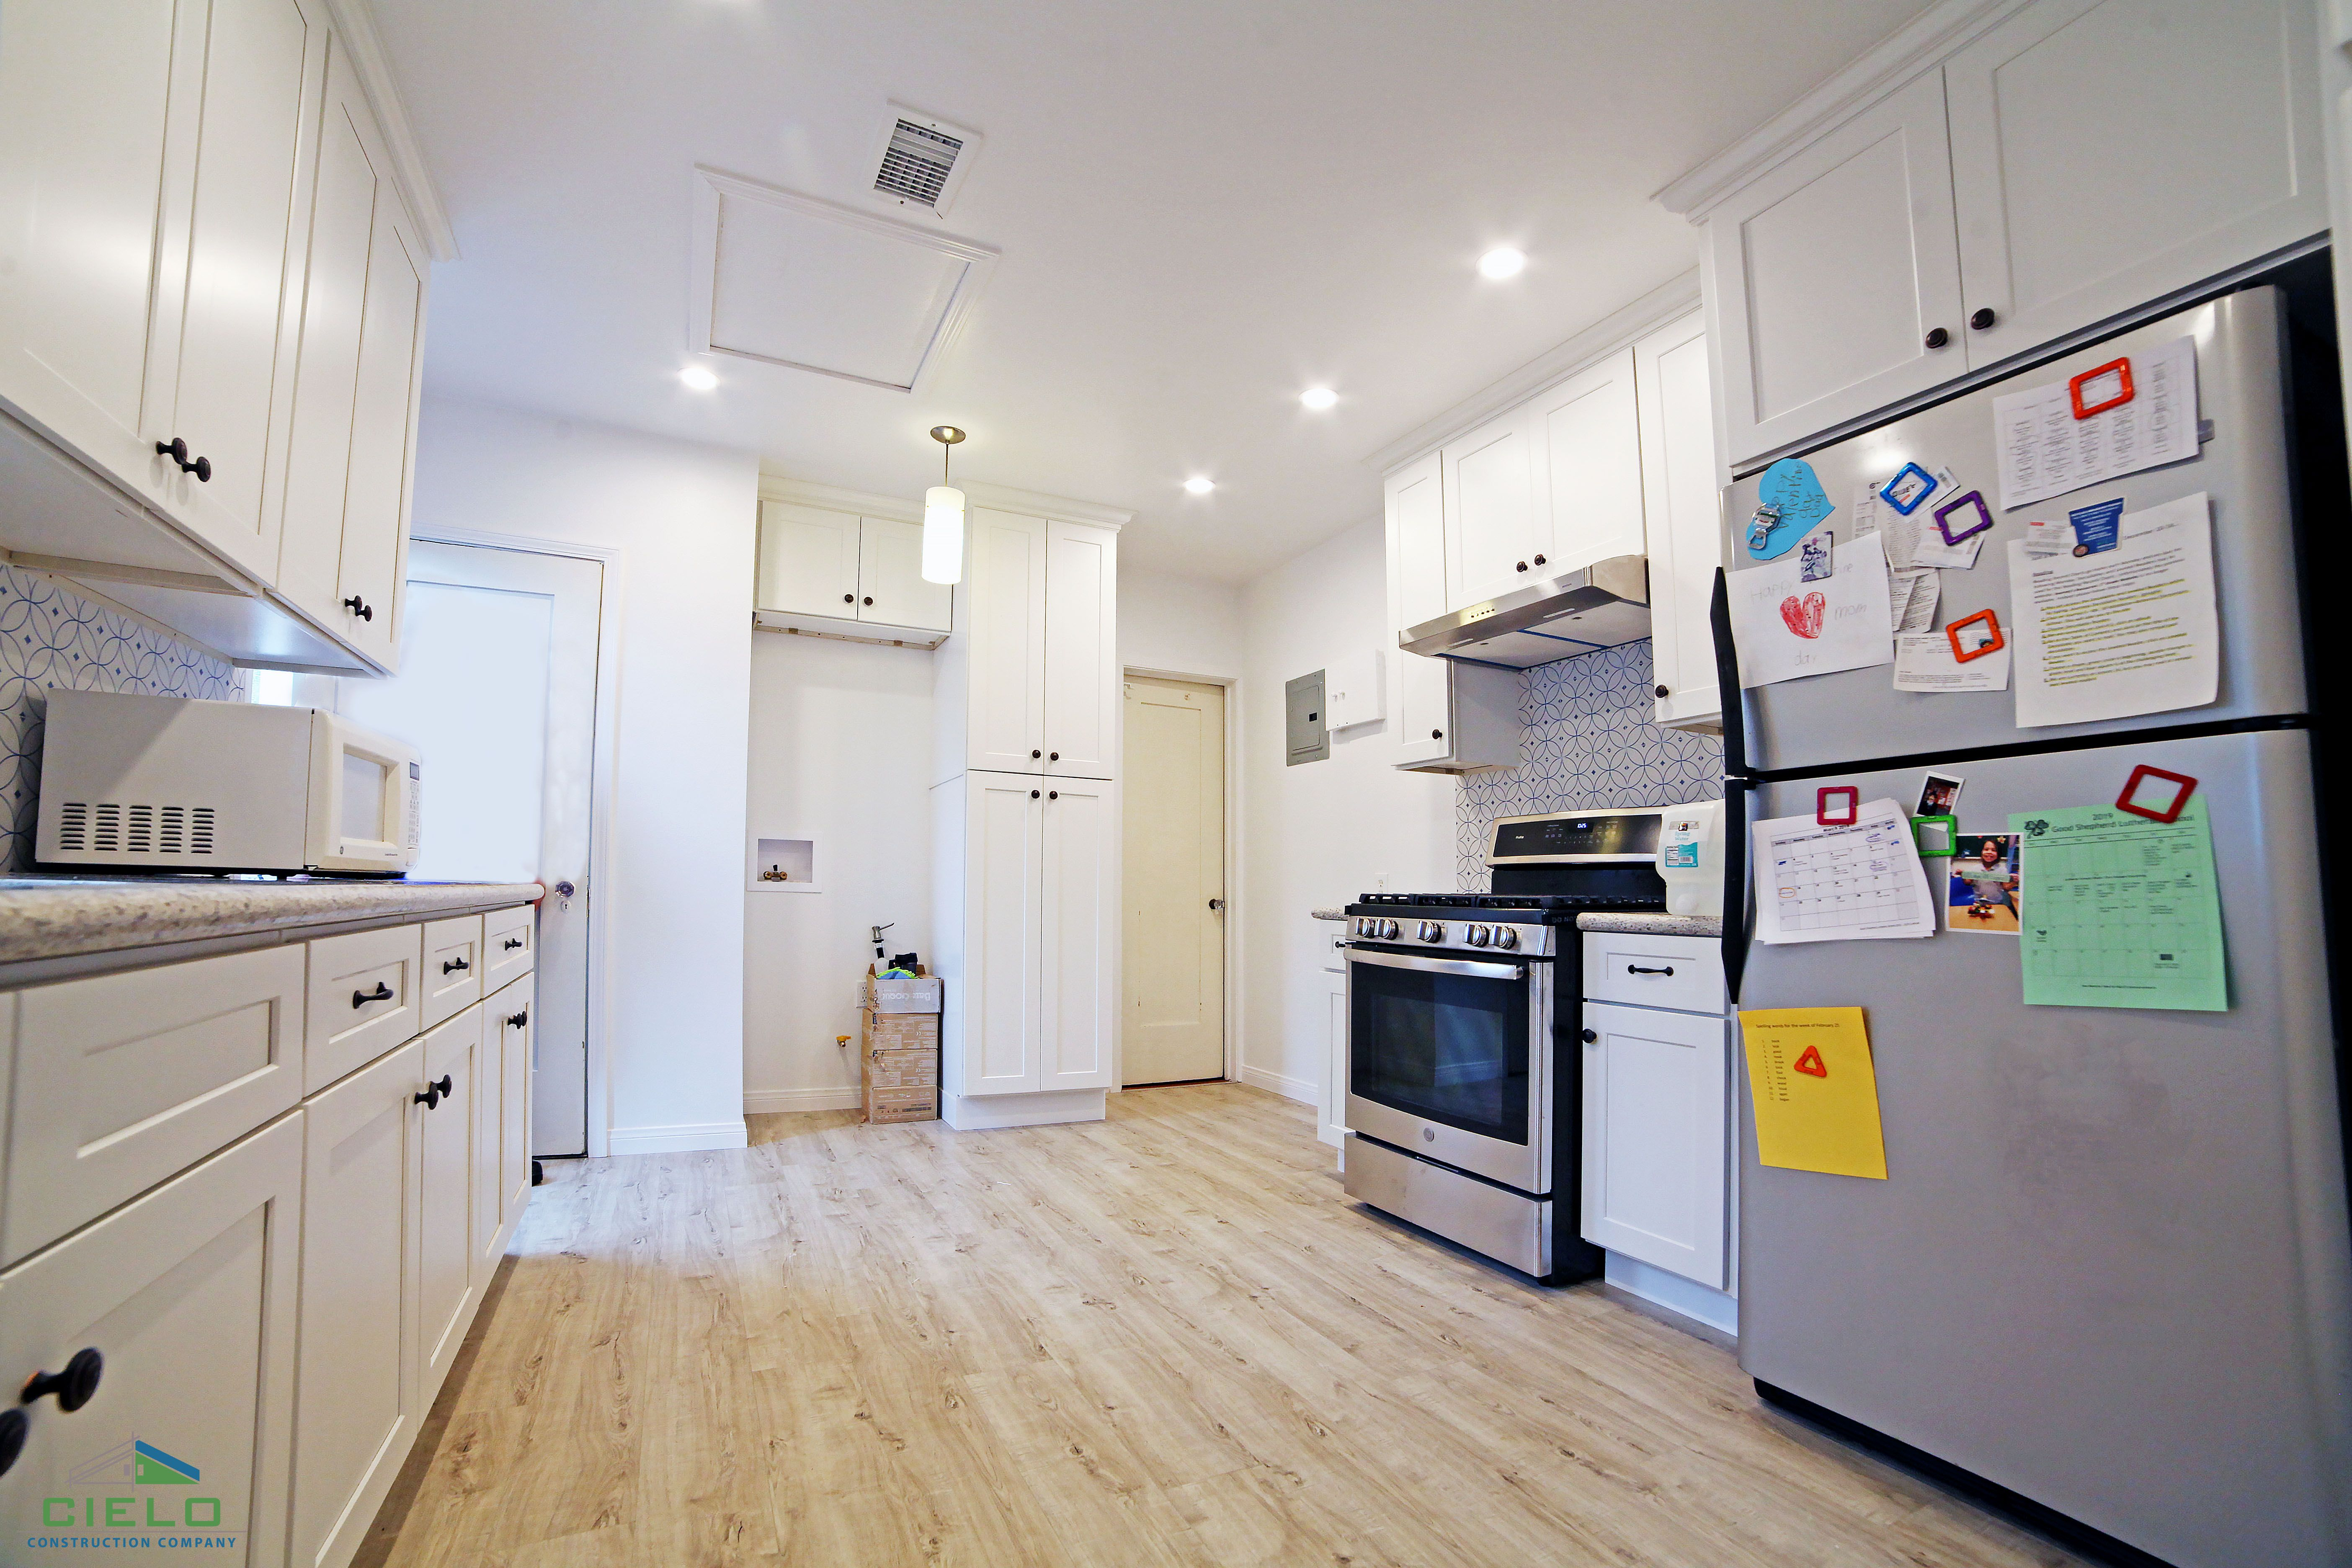 Kitchen By Cielo Construction Glendale California 2019 Kitchen Kitchen Cabinets Home Decor